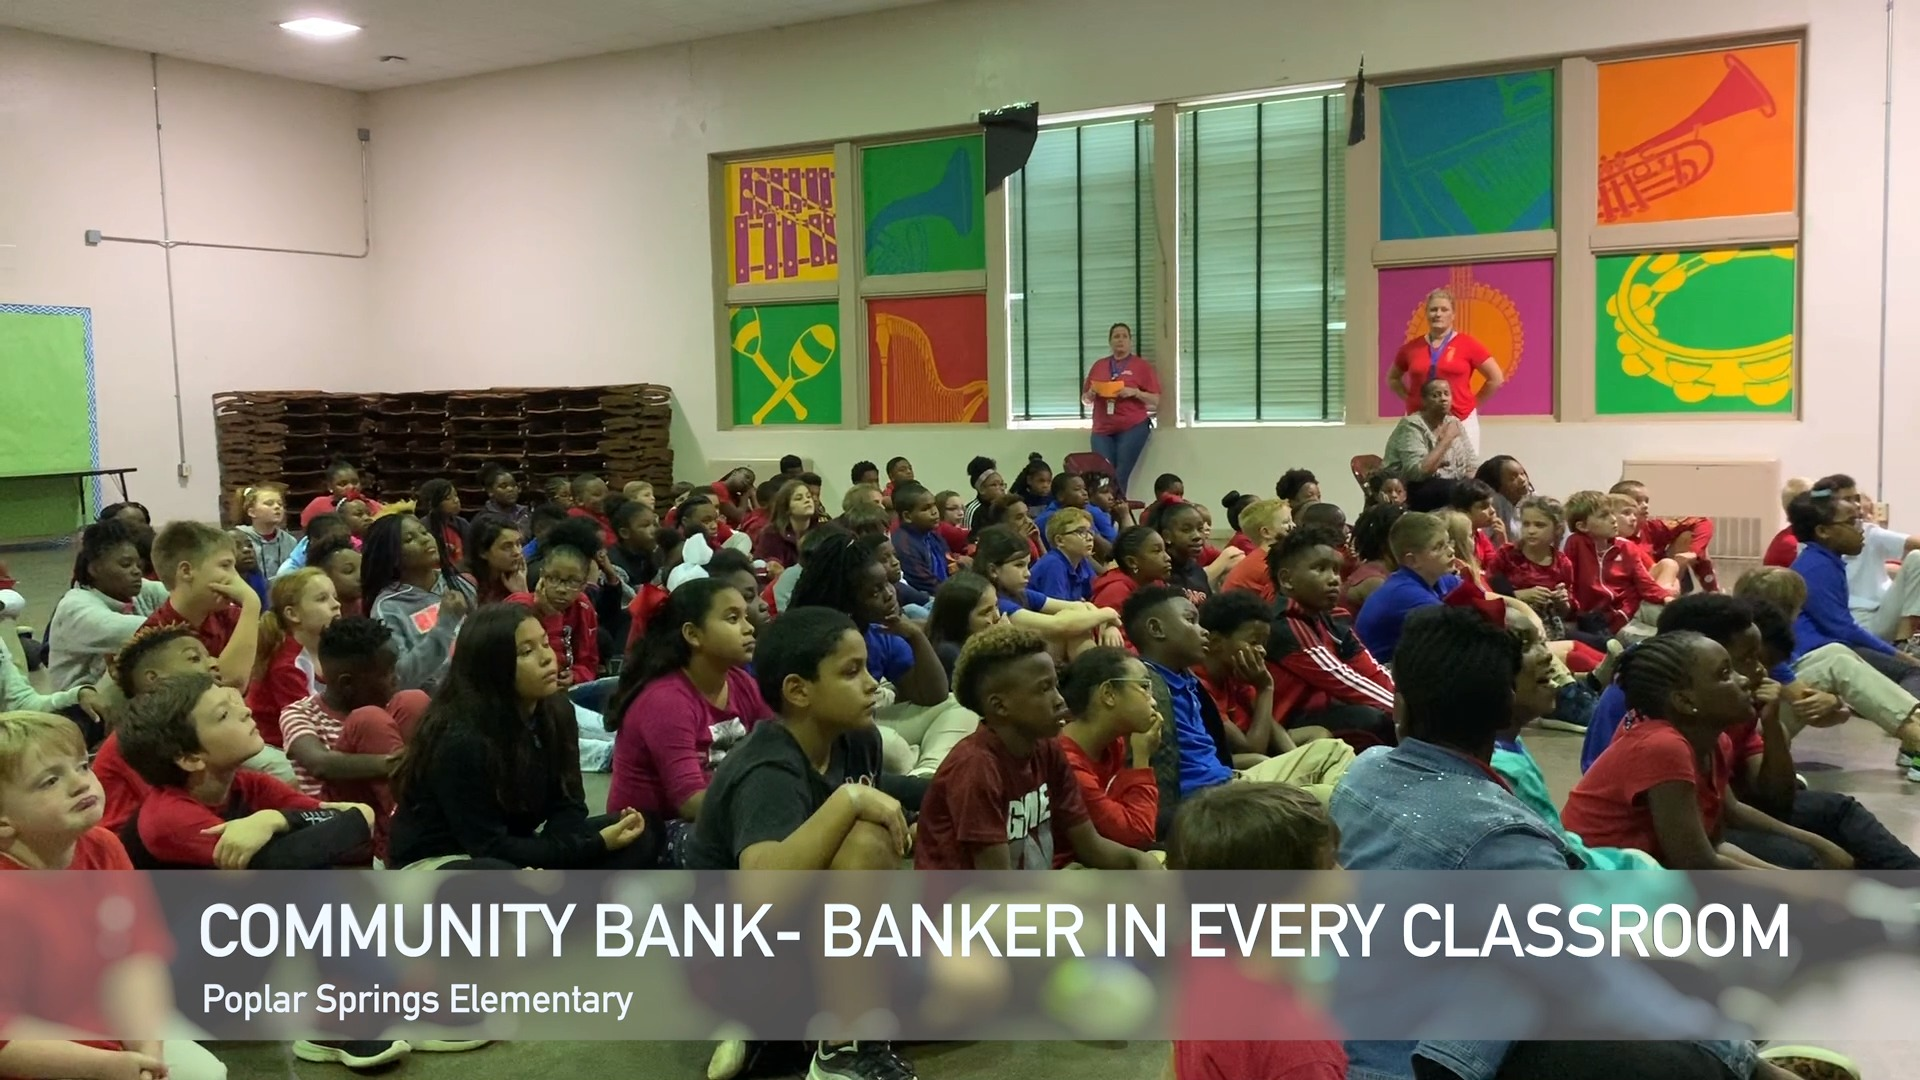 Community Bank- Banker In Every Classroom